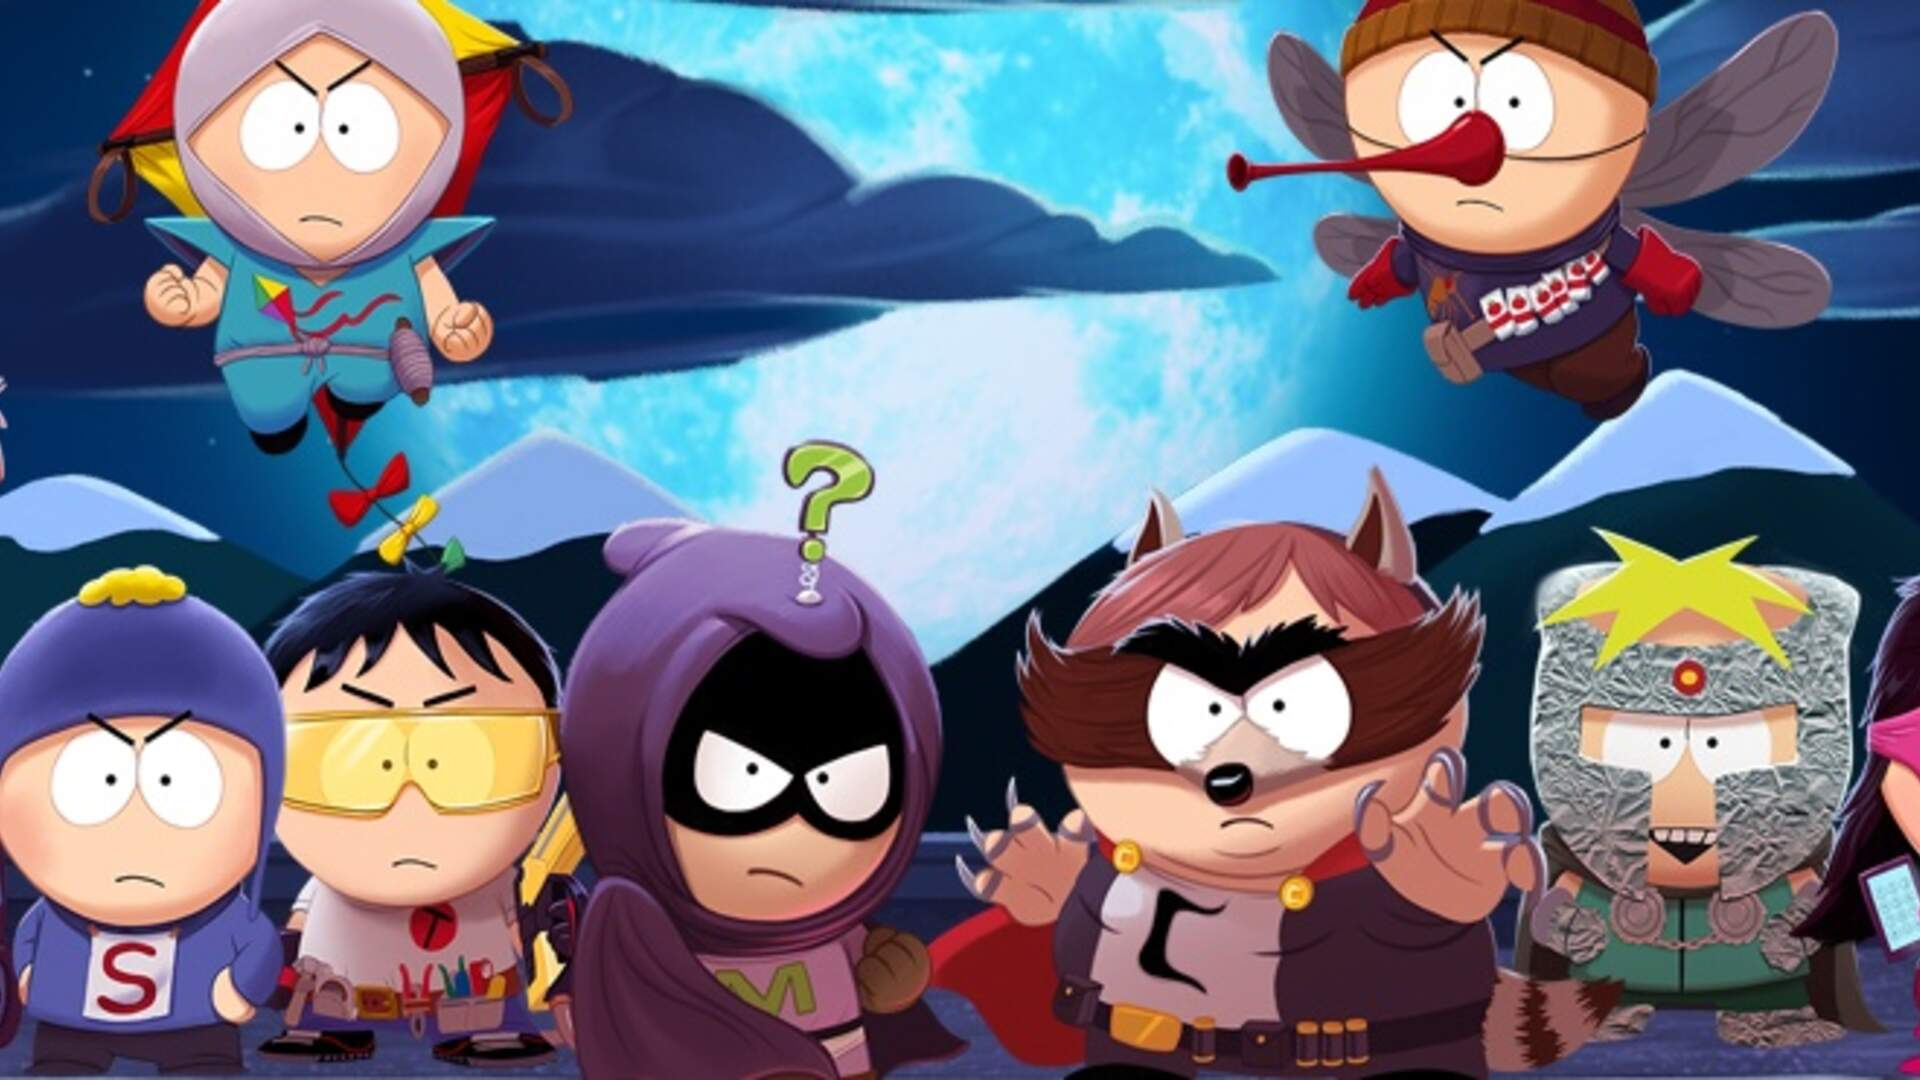 24 04 2018 south park the fractured but whole guide combat tips and tricks character classes explained mission walkthroughs